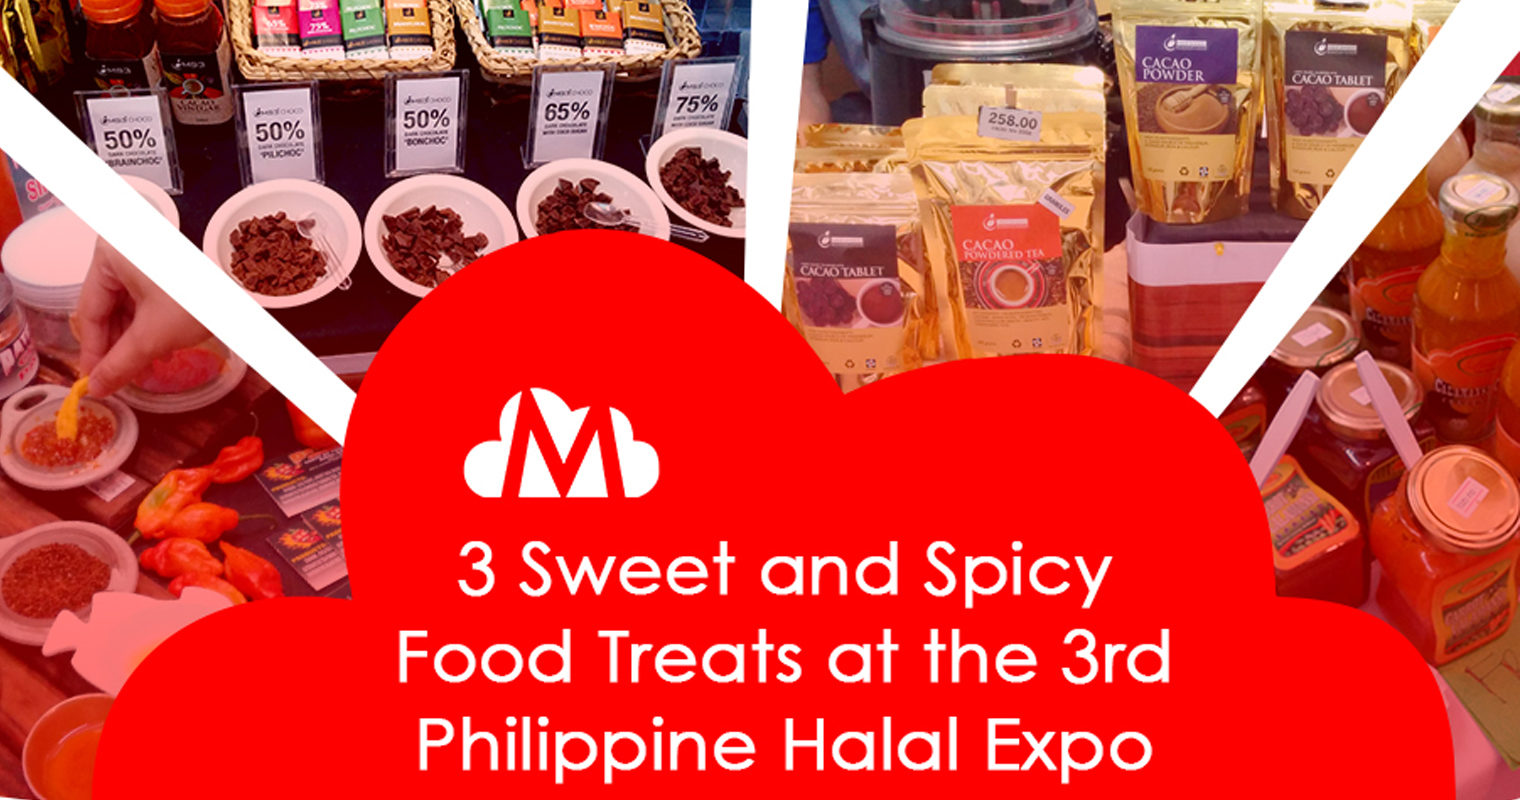 3 Sweet and Spicy Food Treats at the 3rd Philippine Halal Expo